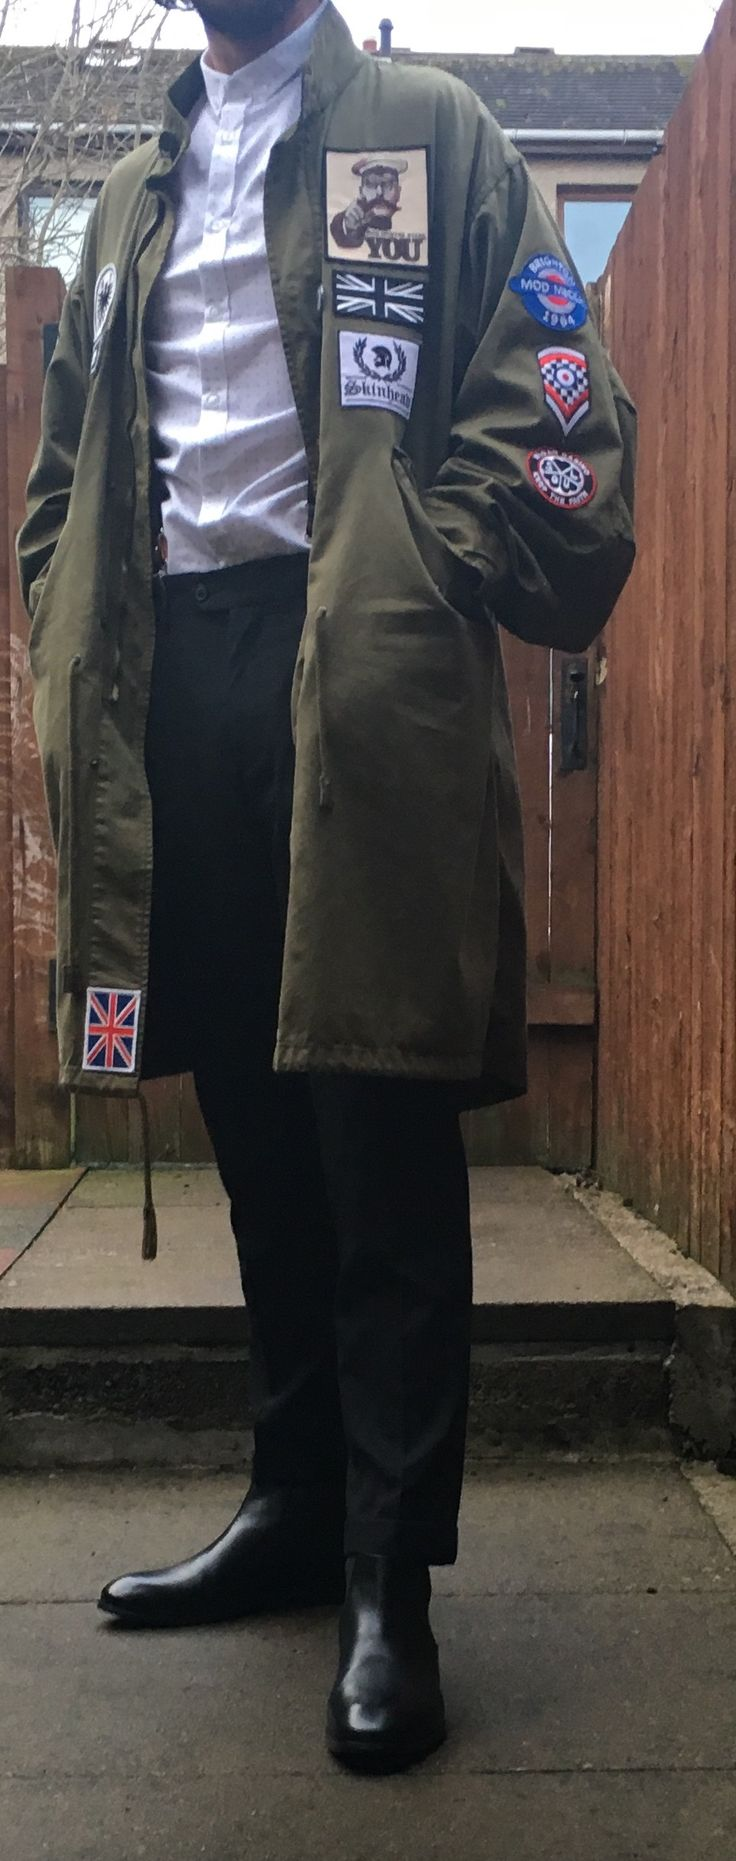 Attire sorted for March of the Mods